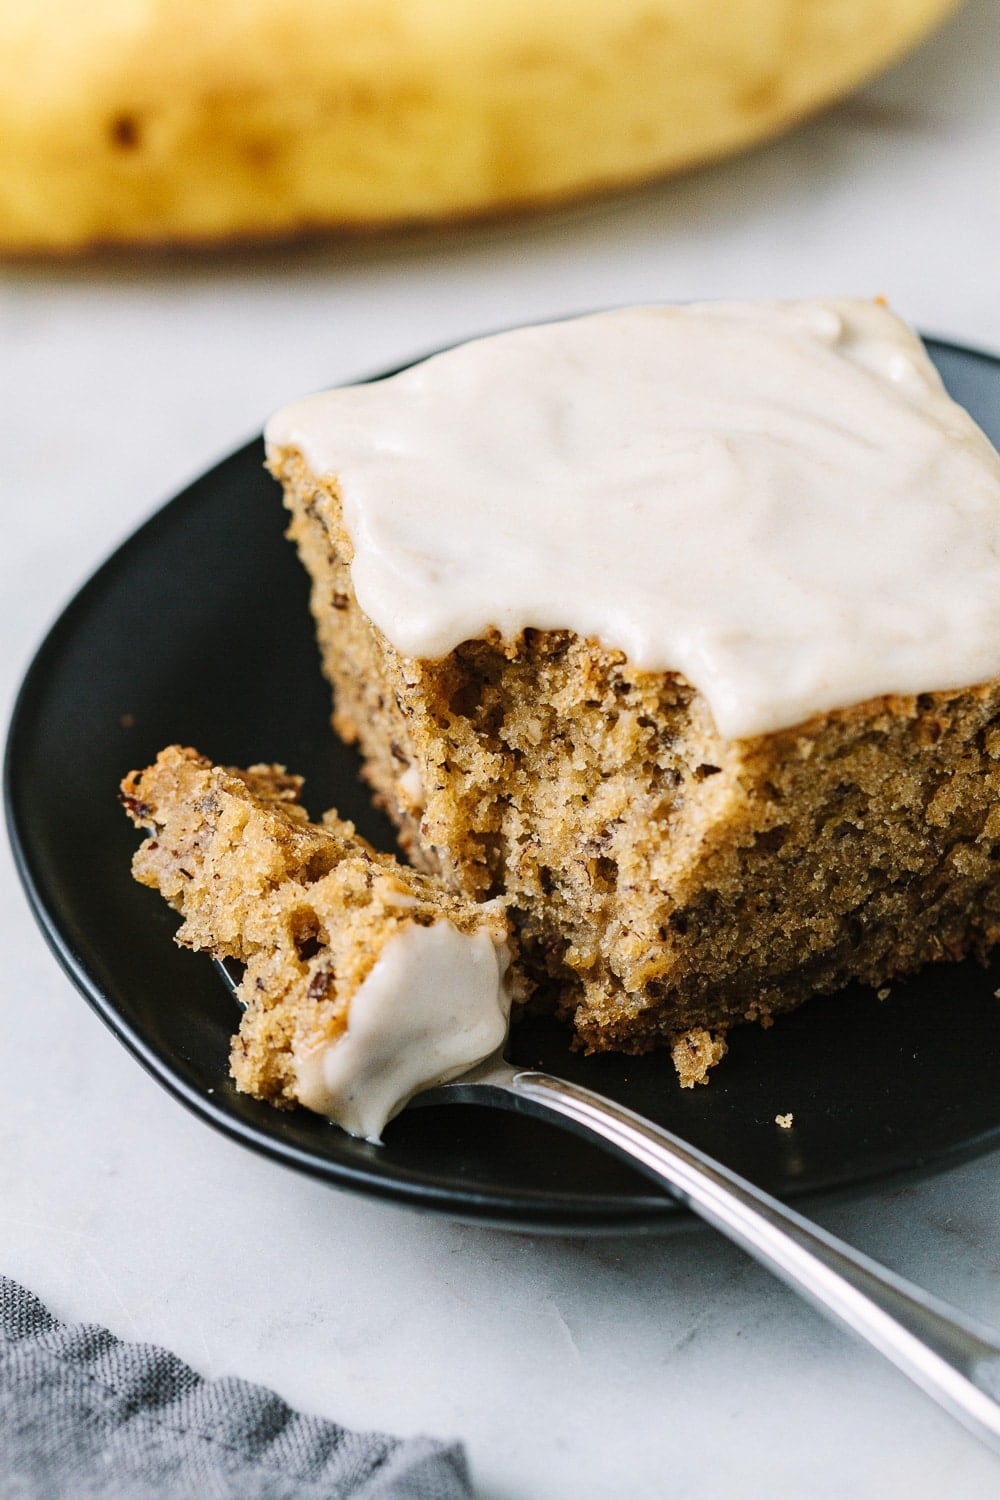 slice of vegan banana cake with a slice on a fork resting on a small black plate.